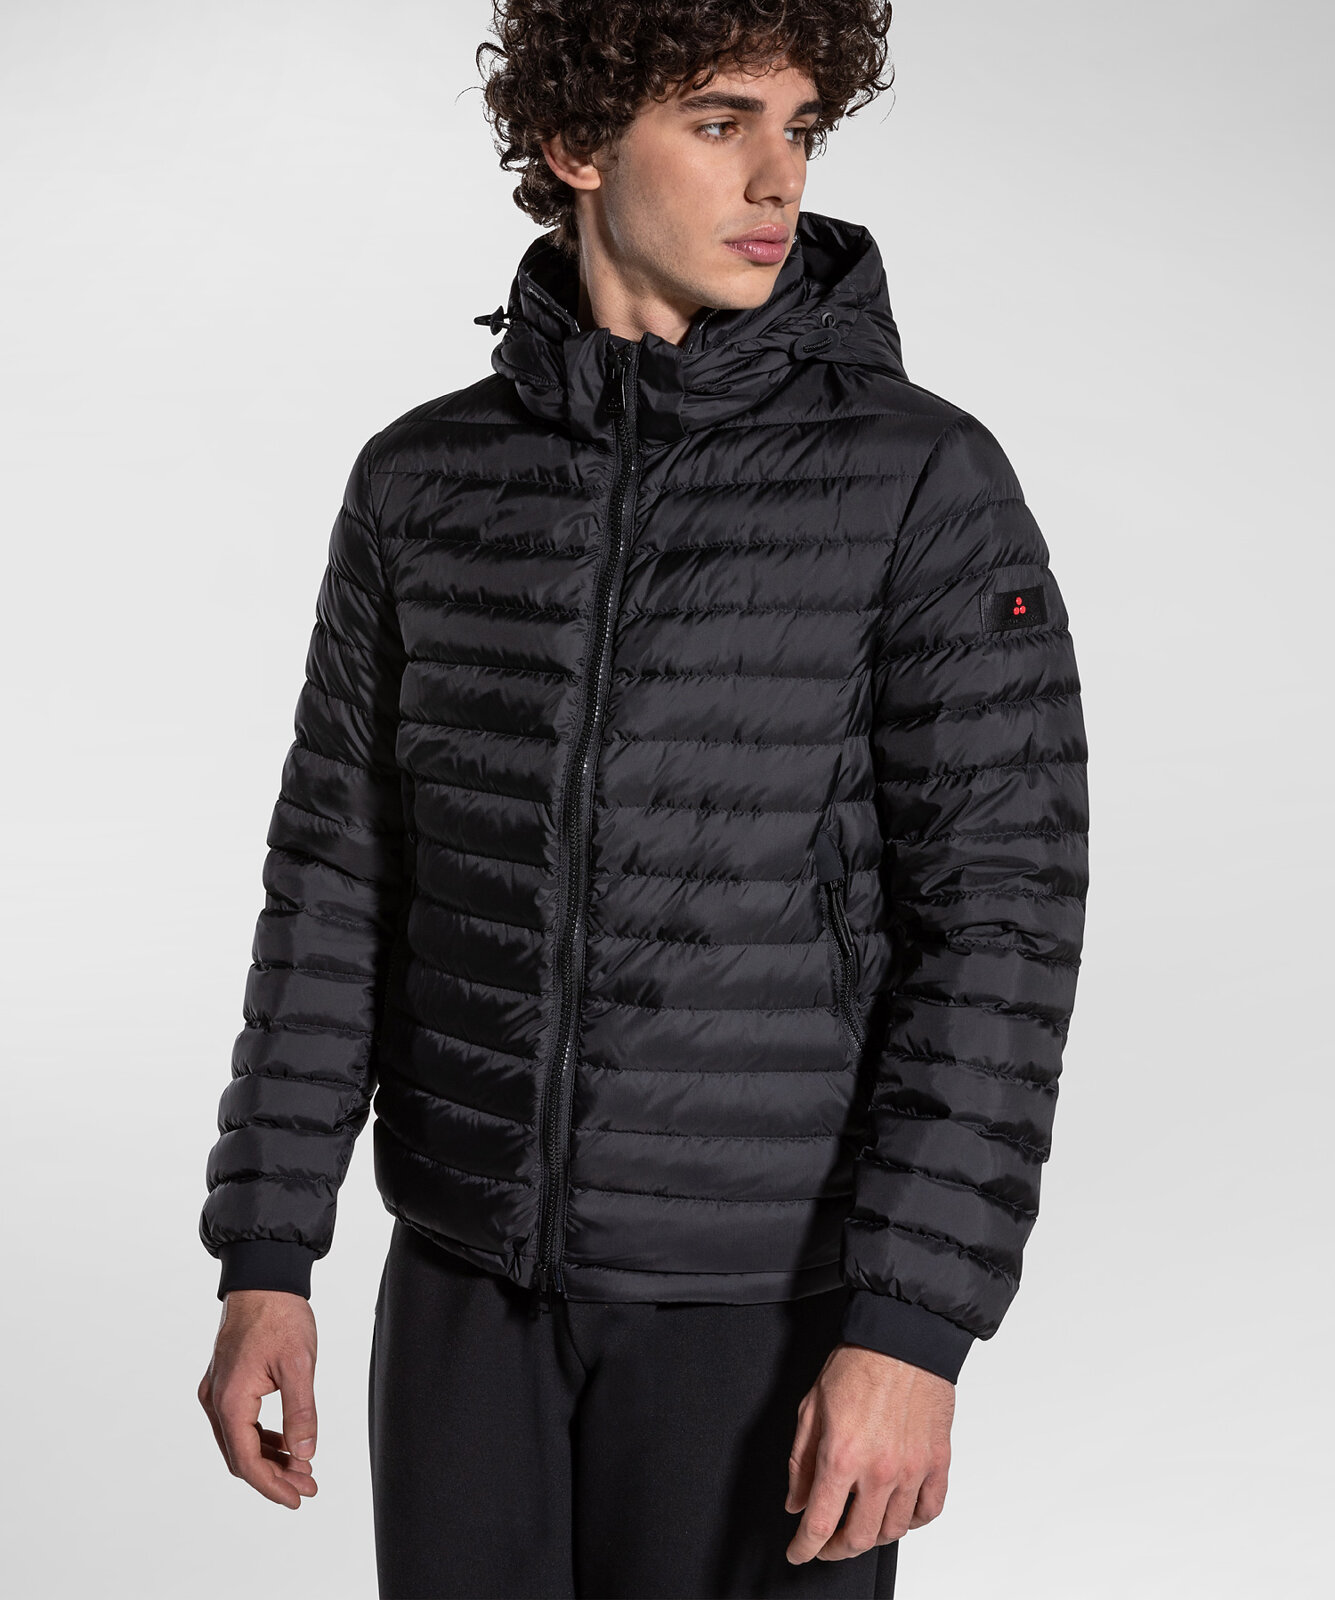 Superlight And Semi-glossy Down Jacket - Peuterey